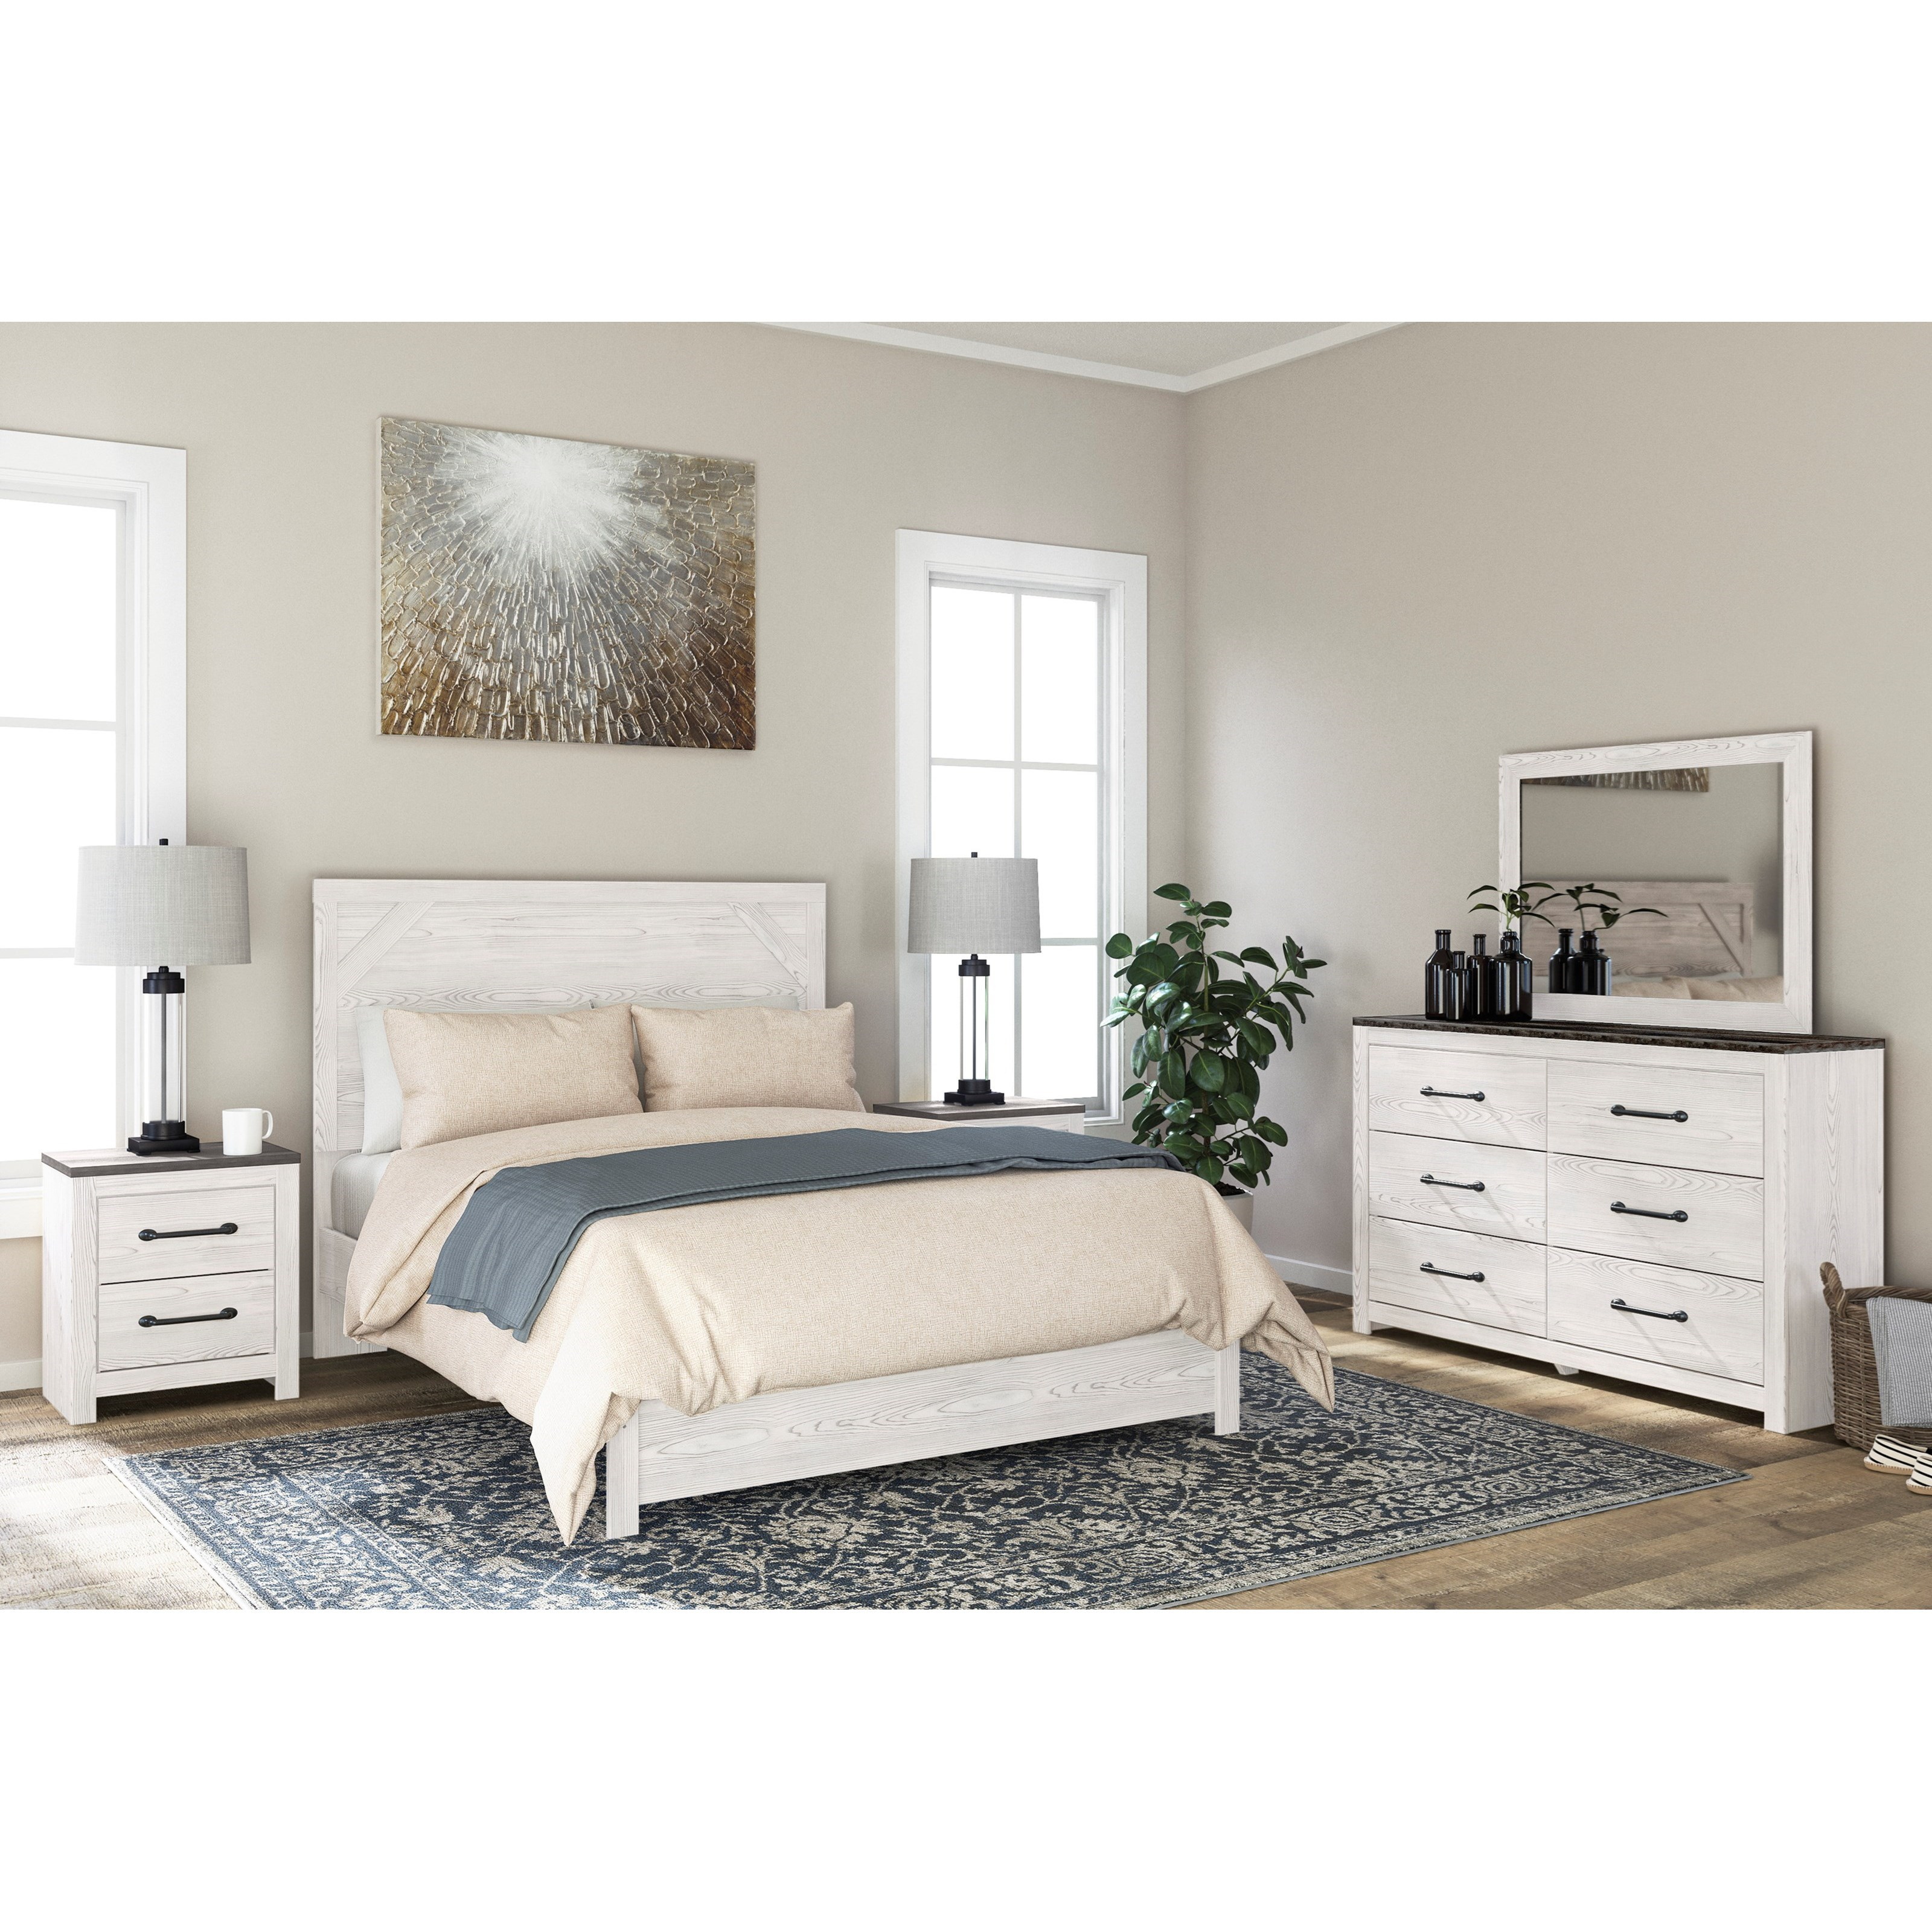 Gerridan Queen Bedroom Group by Signature Design by Ashley at Northeast Factory Direct